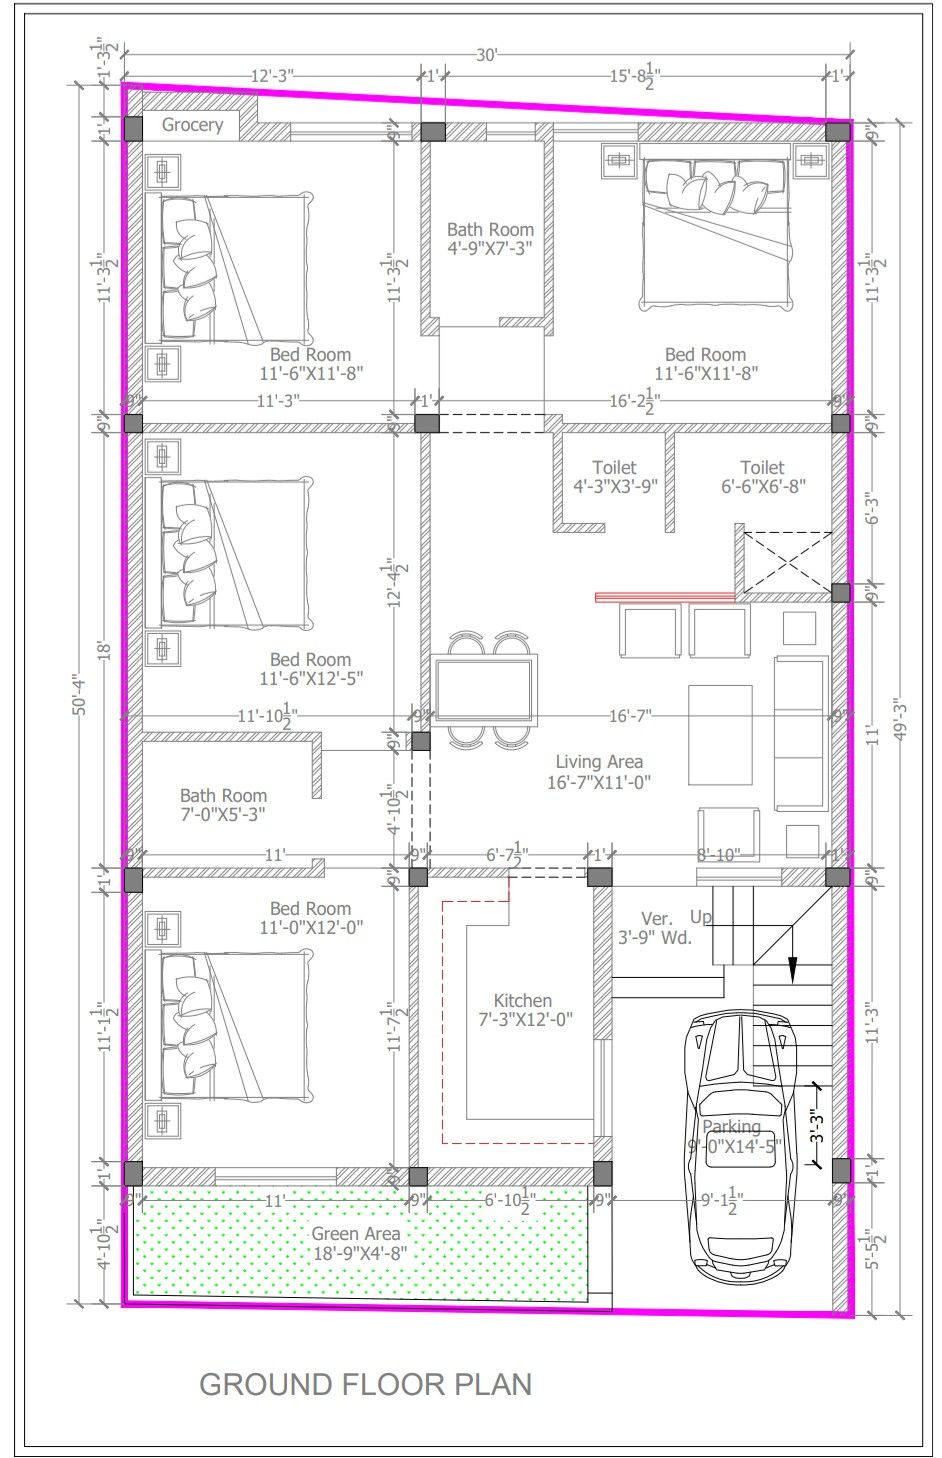 30x50 Planning 4 Bhk Home Planning Indian House Plans Single Storey House Plans 40x60 House Plans